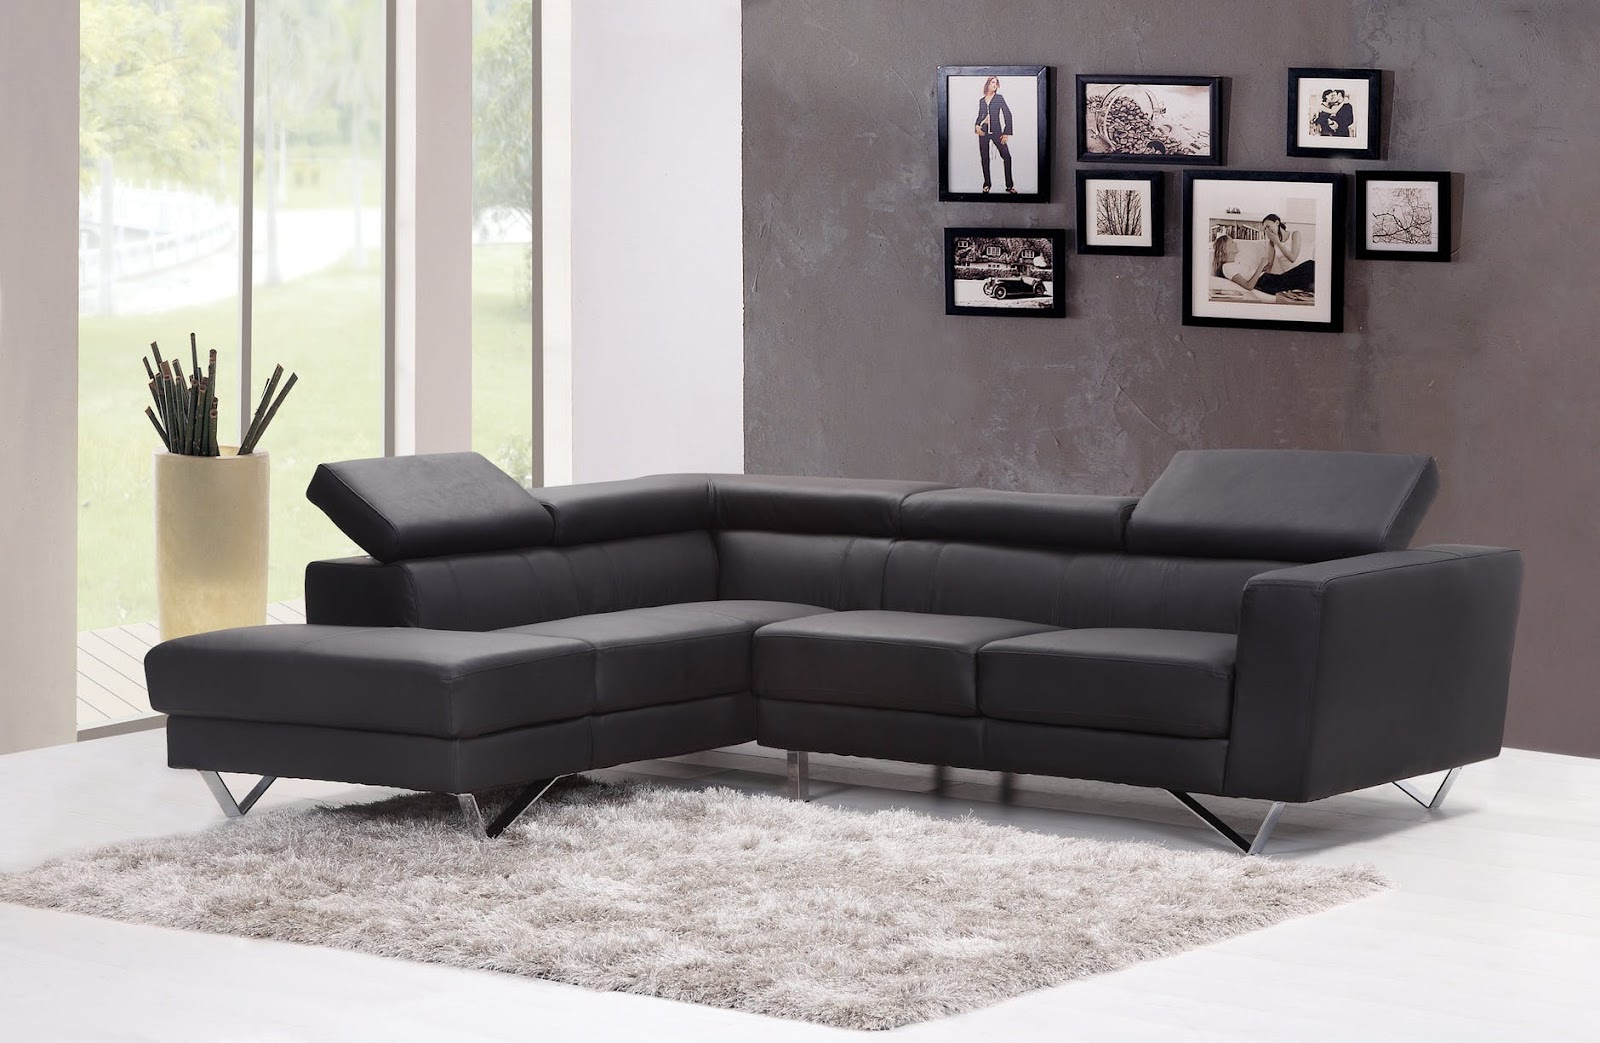 Top 3 Best Quality Sofa Brands - Leather Expressions